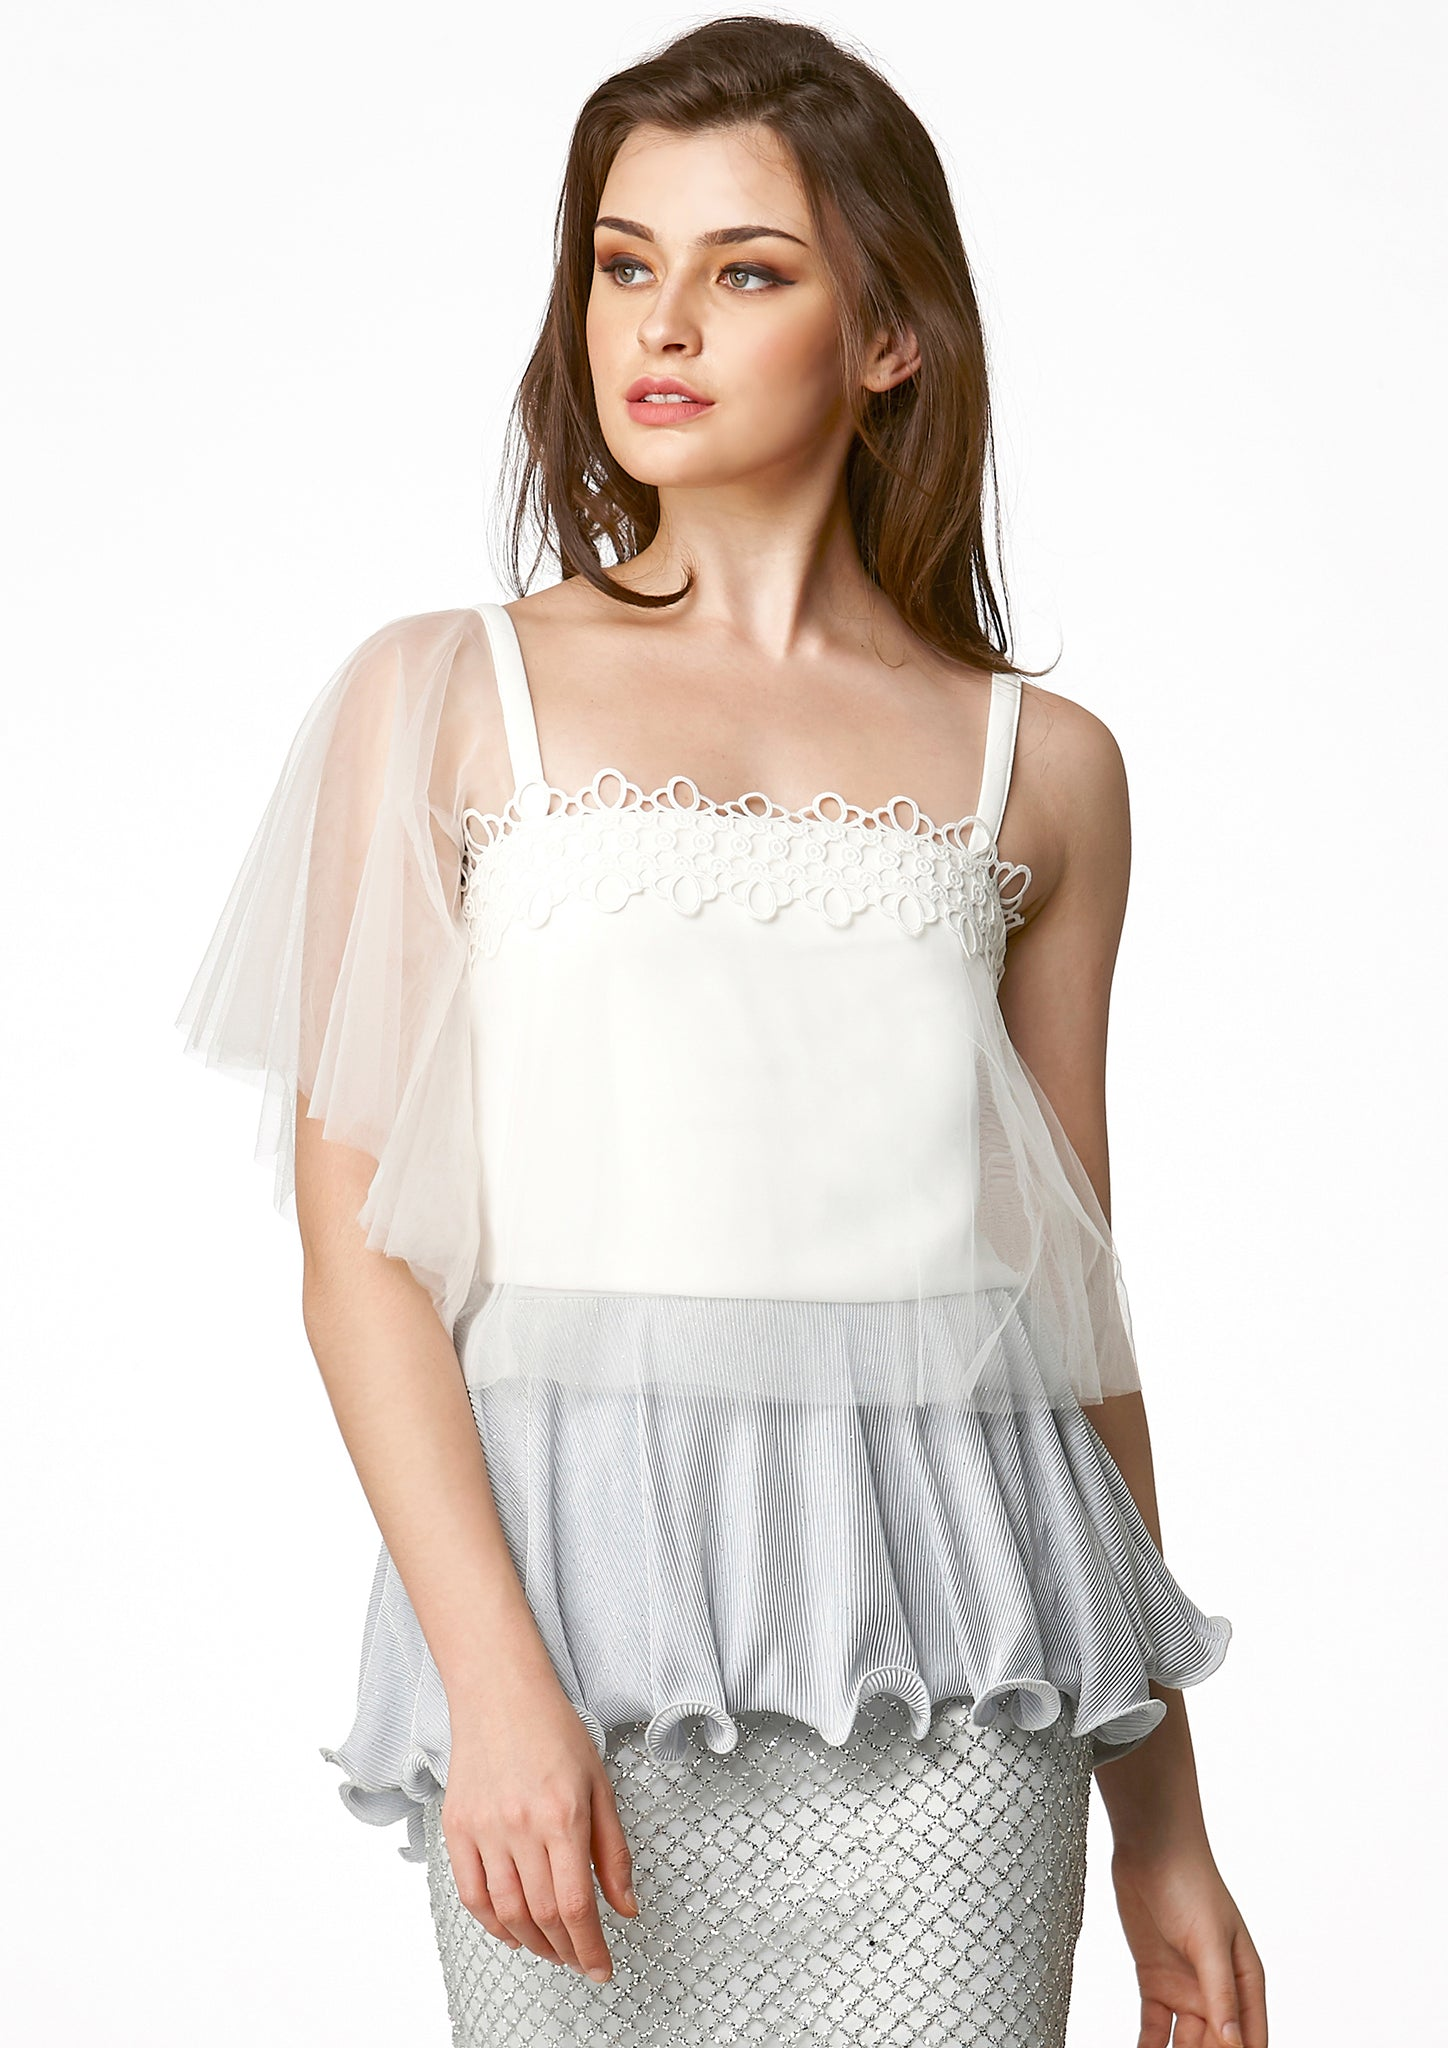 MOS Tulle Crop Top (White) - Moxie